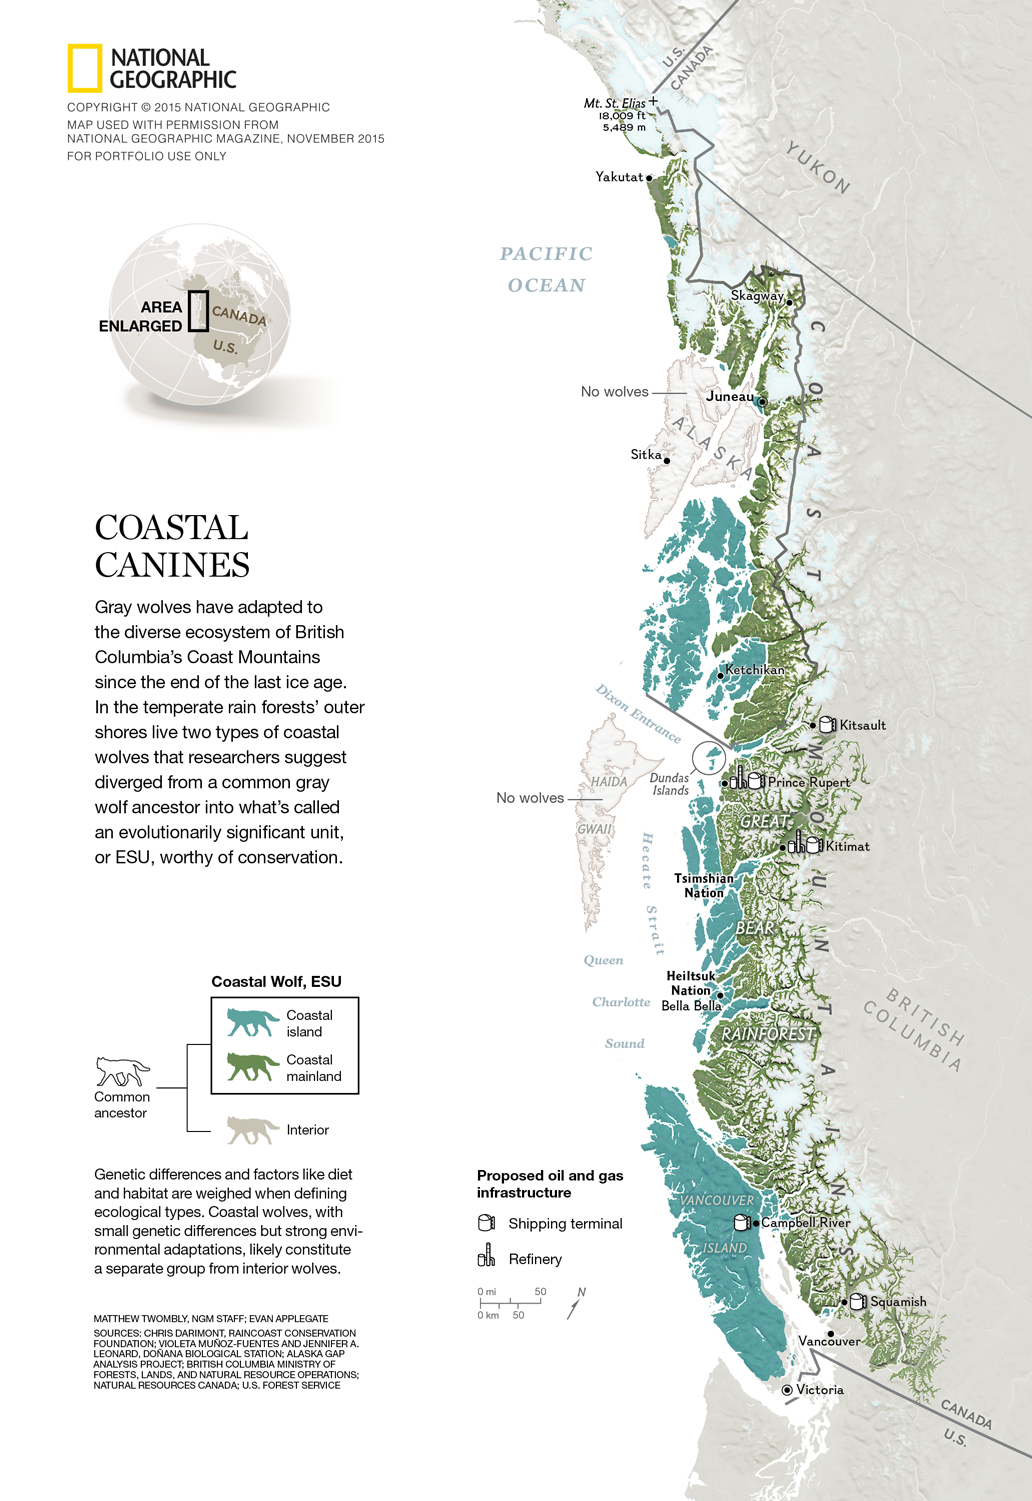 National Geographic map and data visualization – The Coastal Wolves of British Columbia